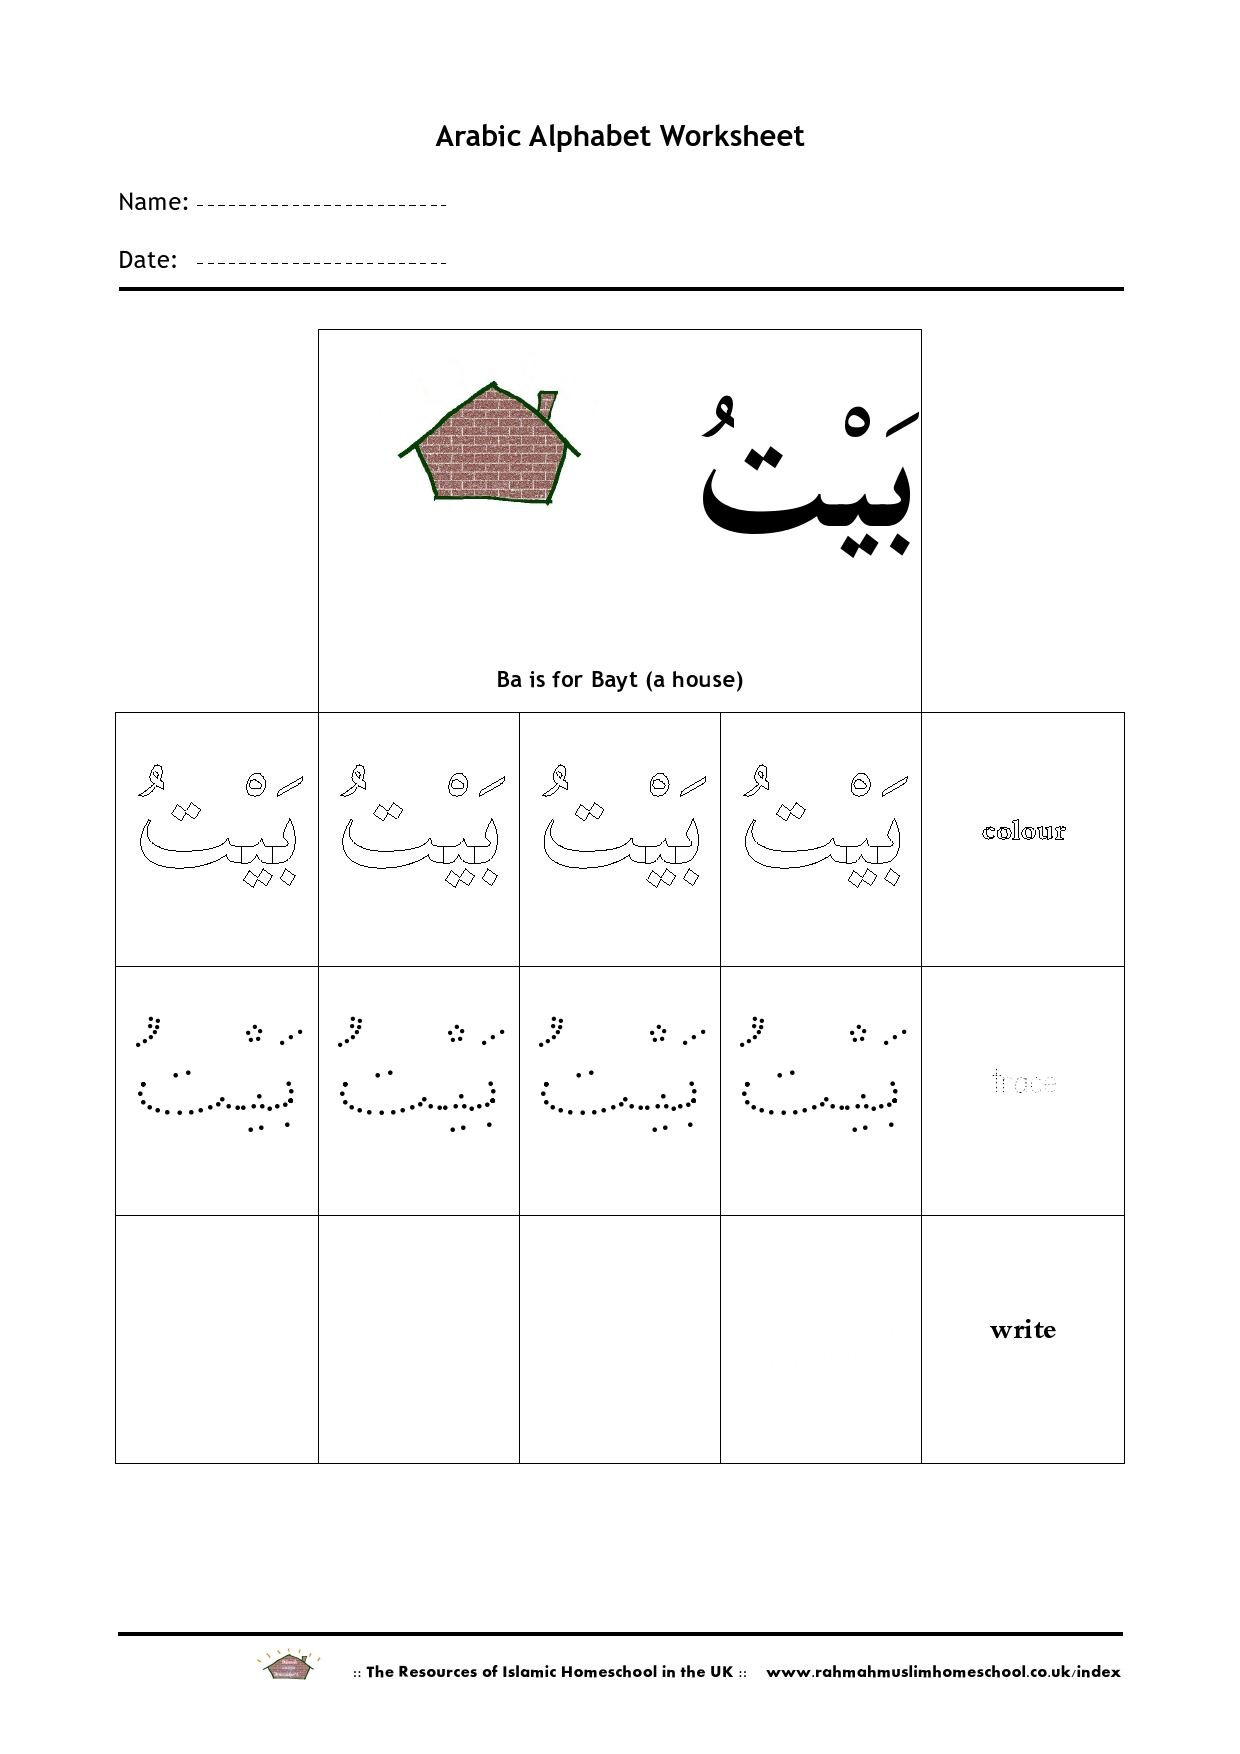 Free Arabic Alphabet Worksheet; Ba Is For Bayt (A House